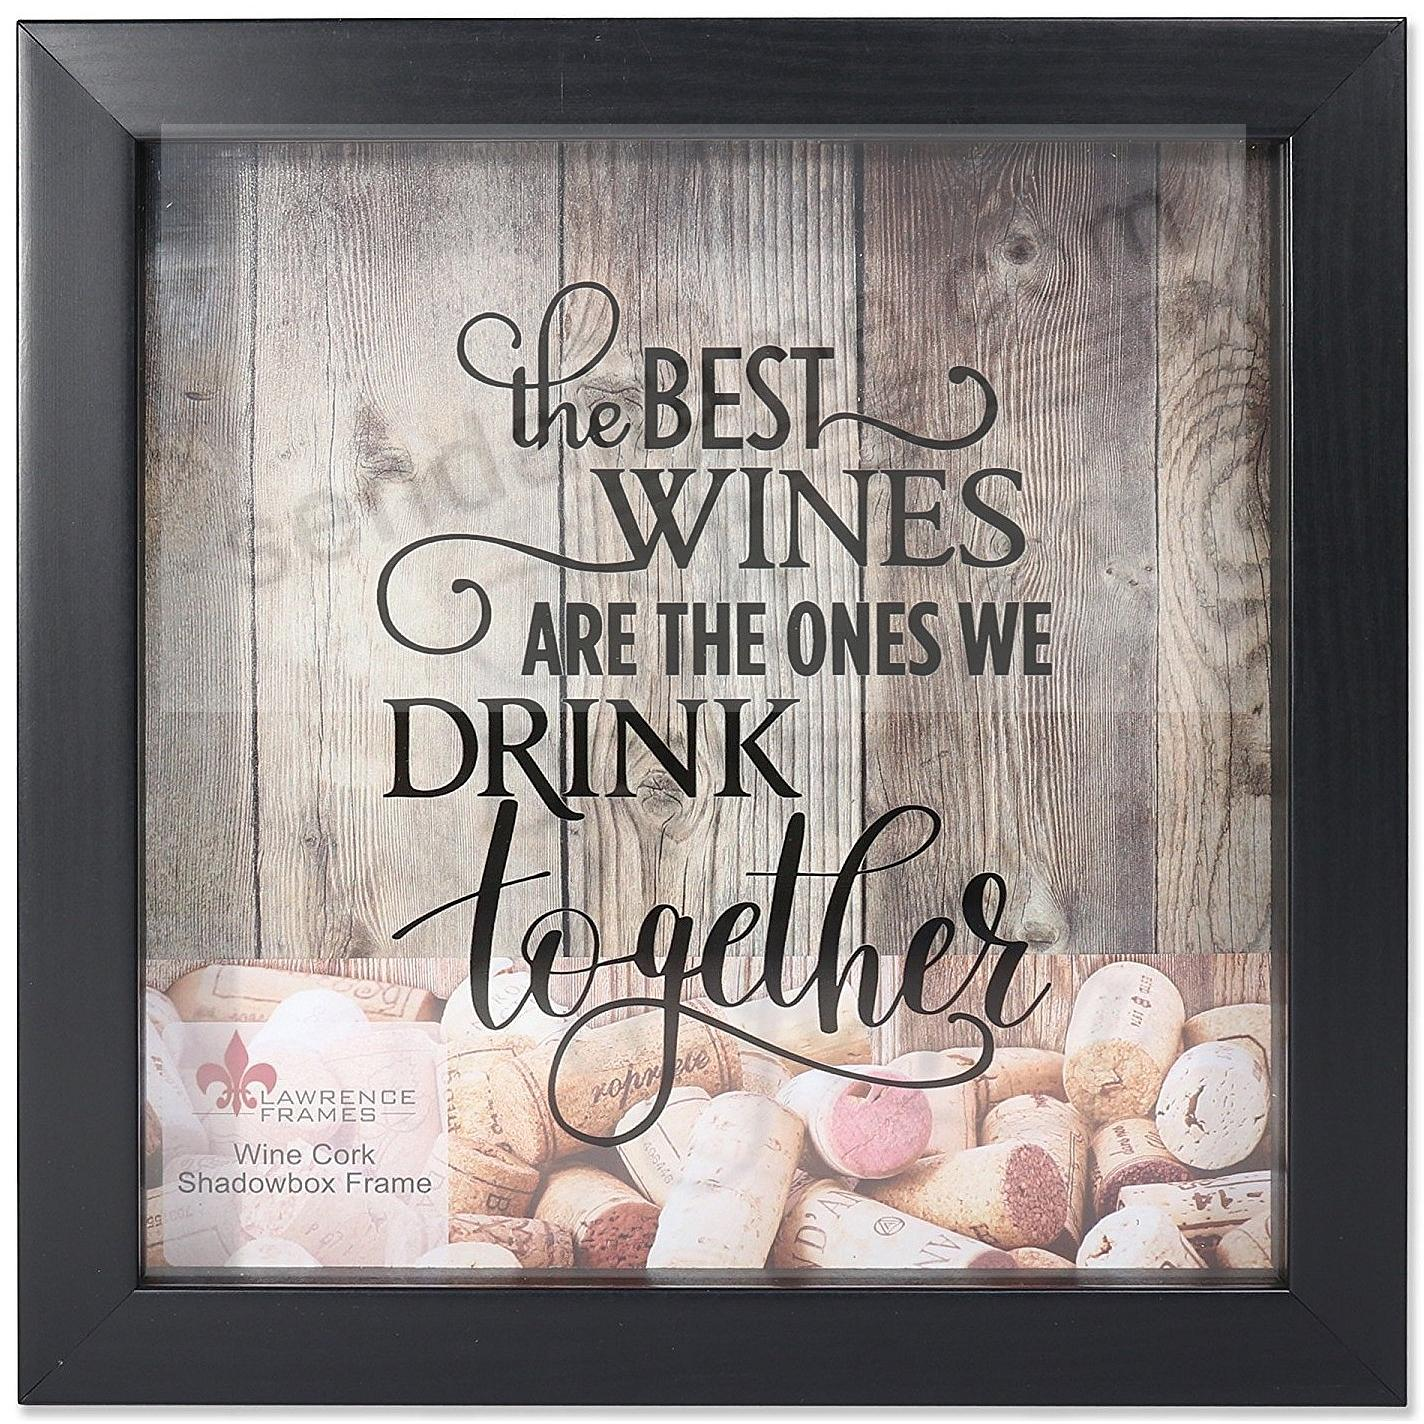 WINE CORK HOLDER Black ShadowBox 10x10 frame by Lawrence® - Picture ...